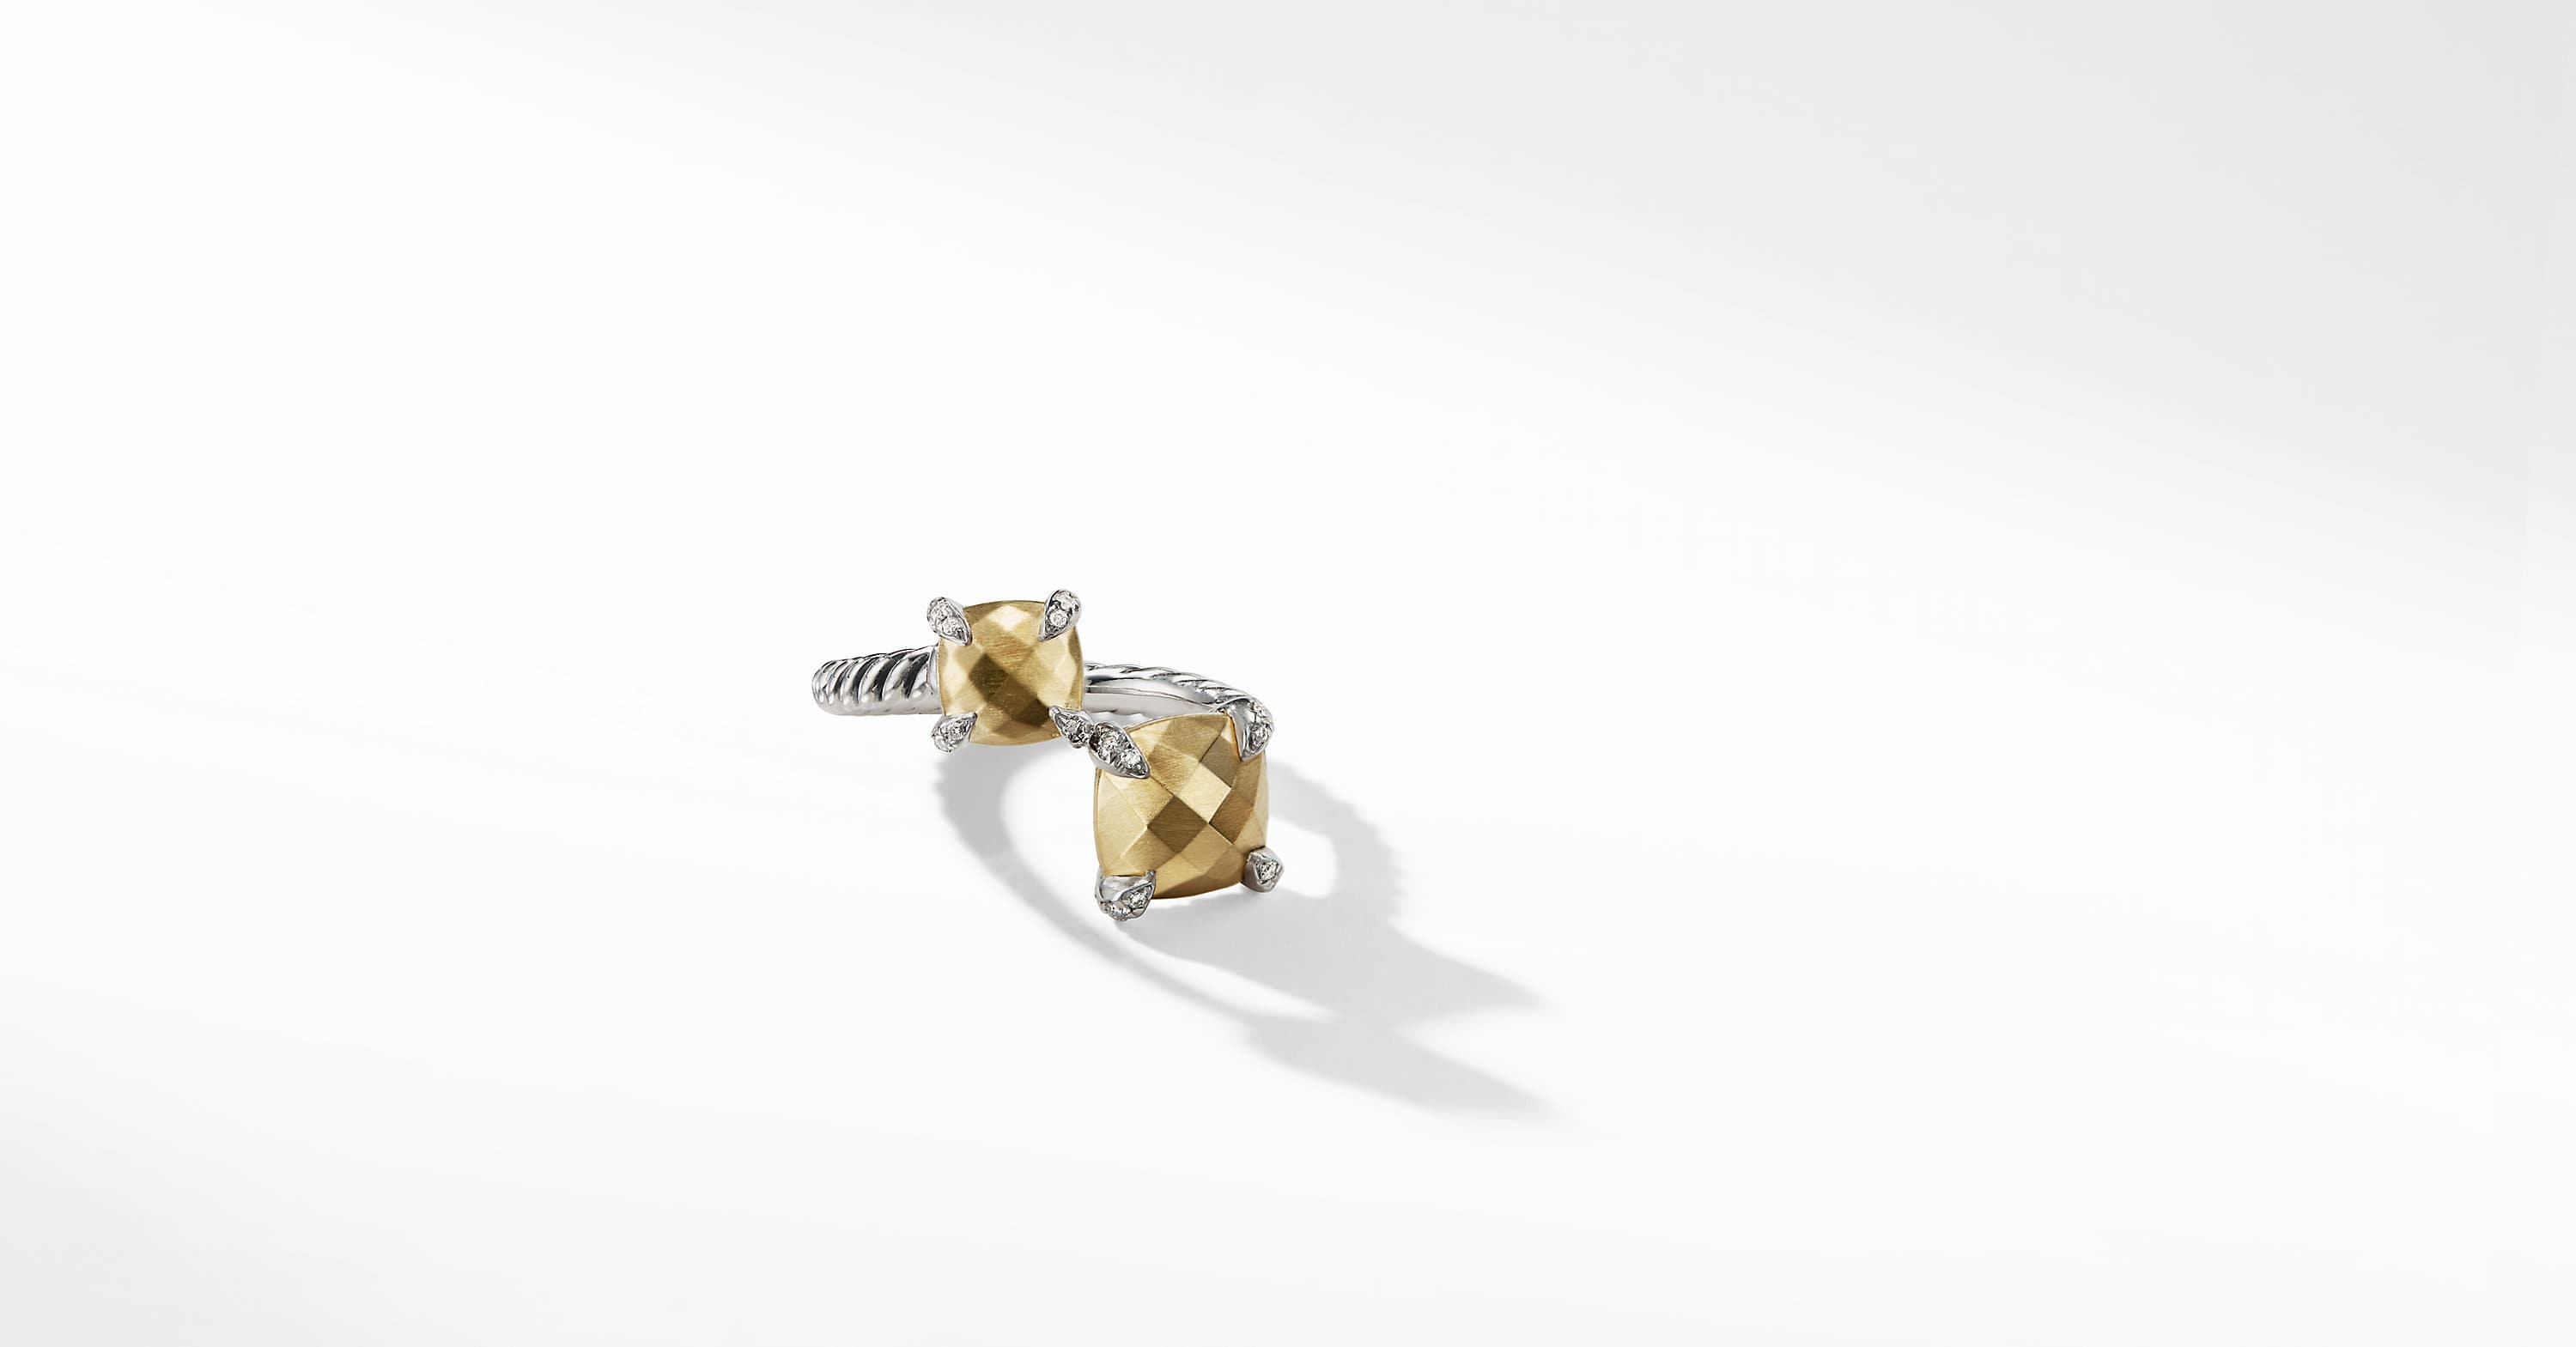 Chatelaine Bypass Ring with 18K Gold and Diamonds